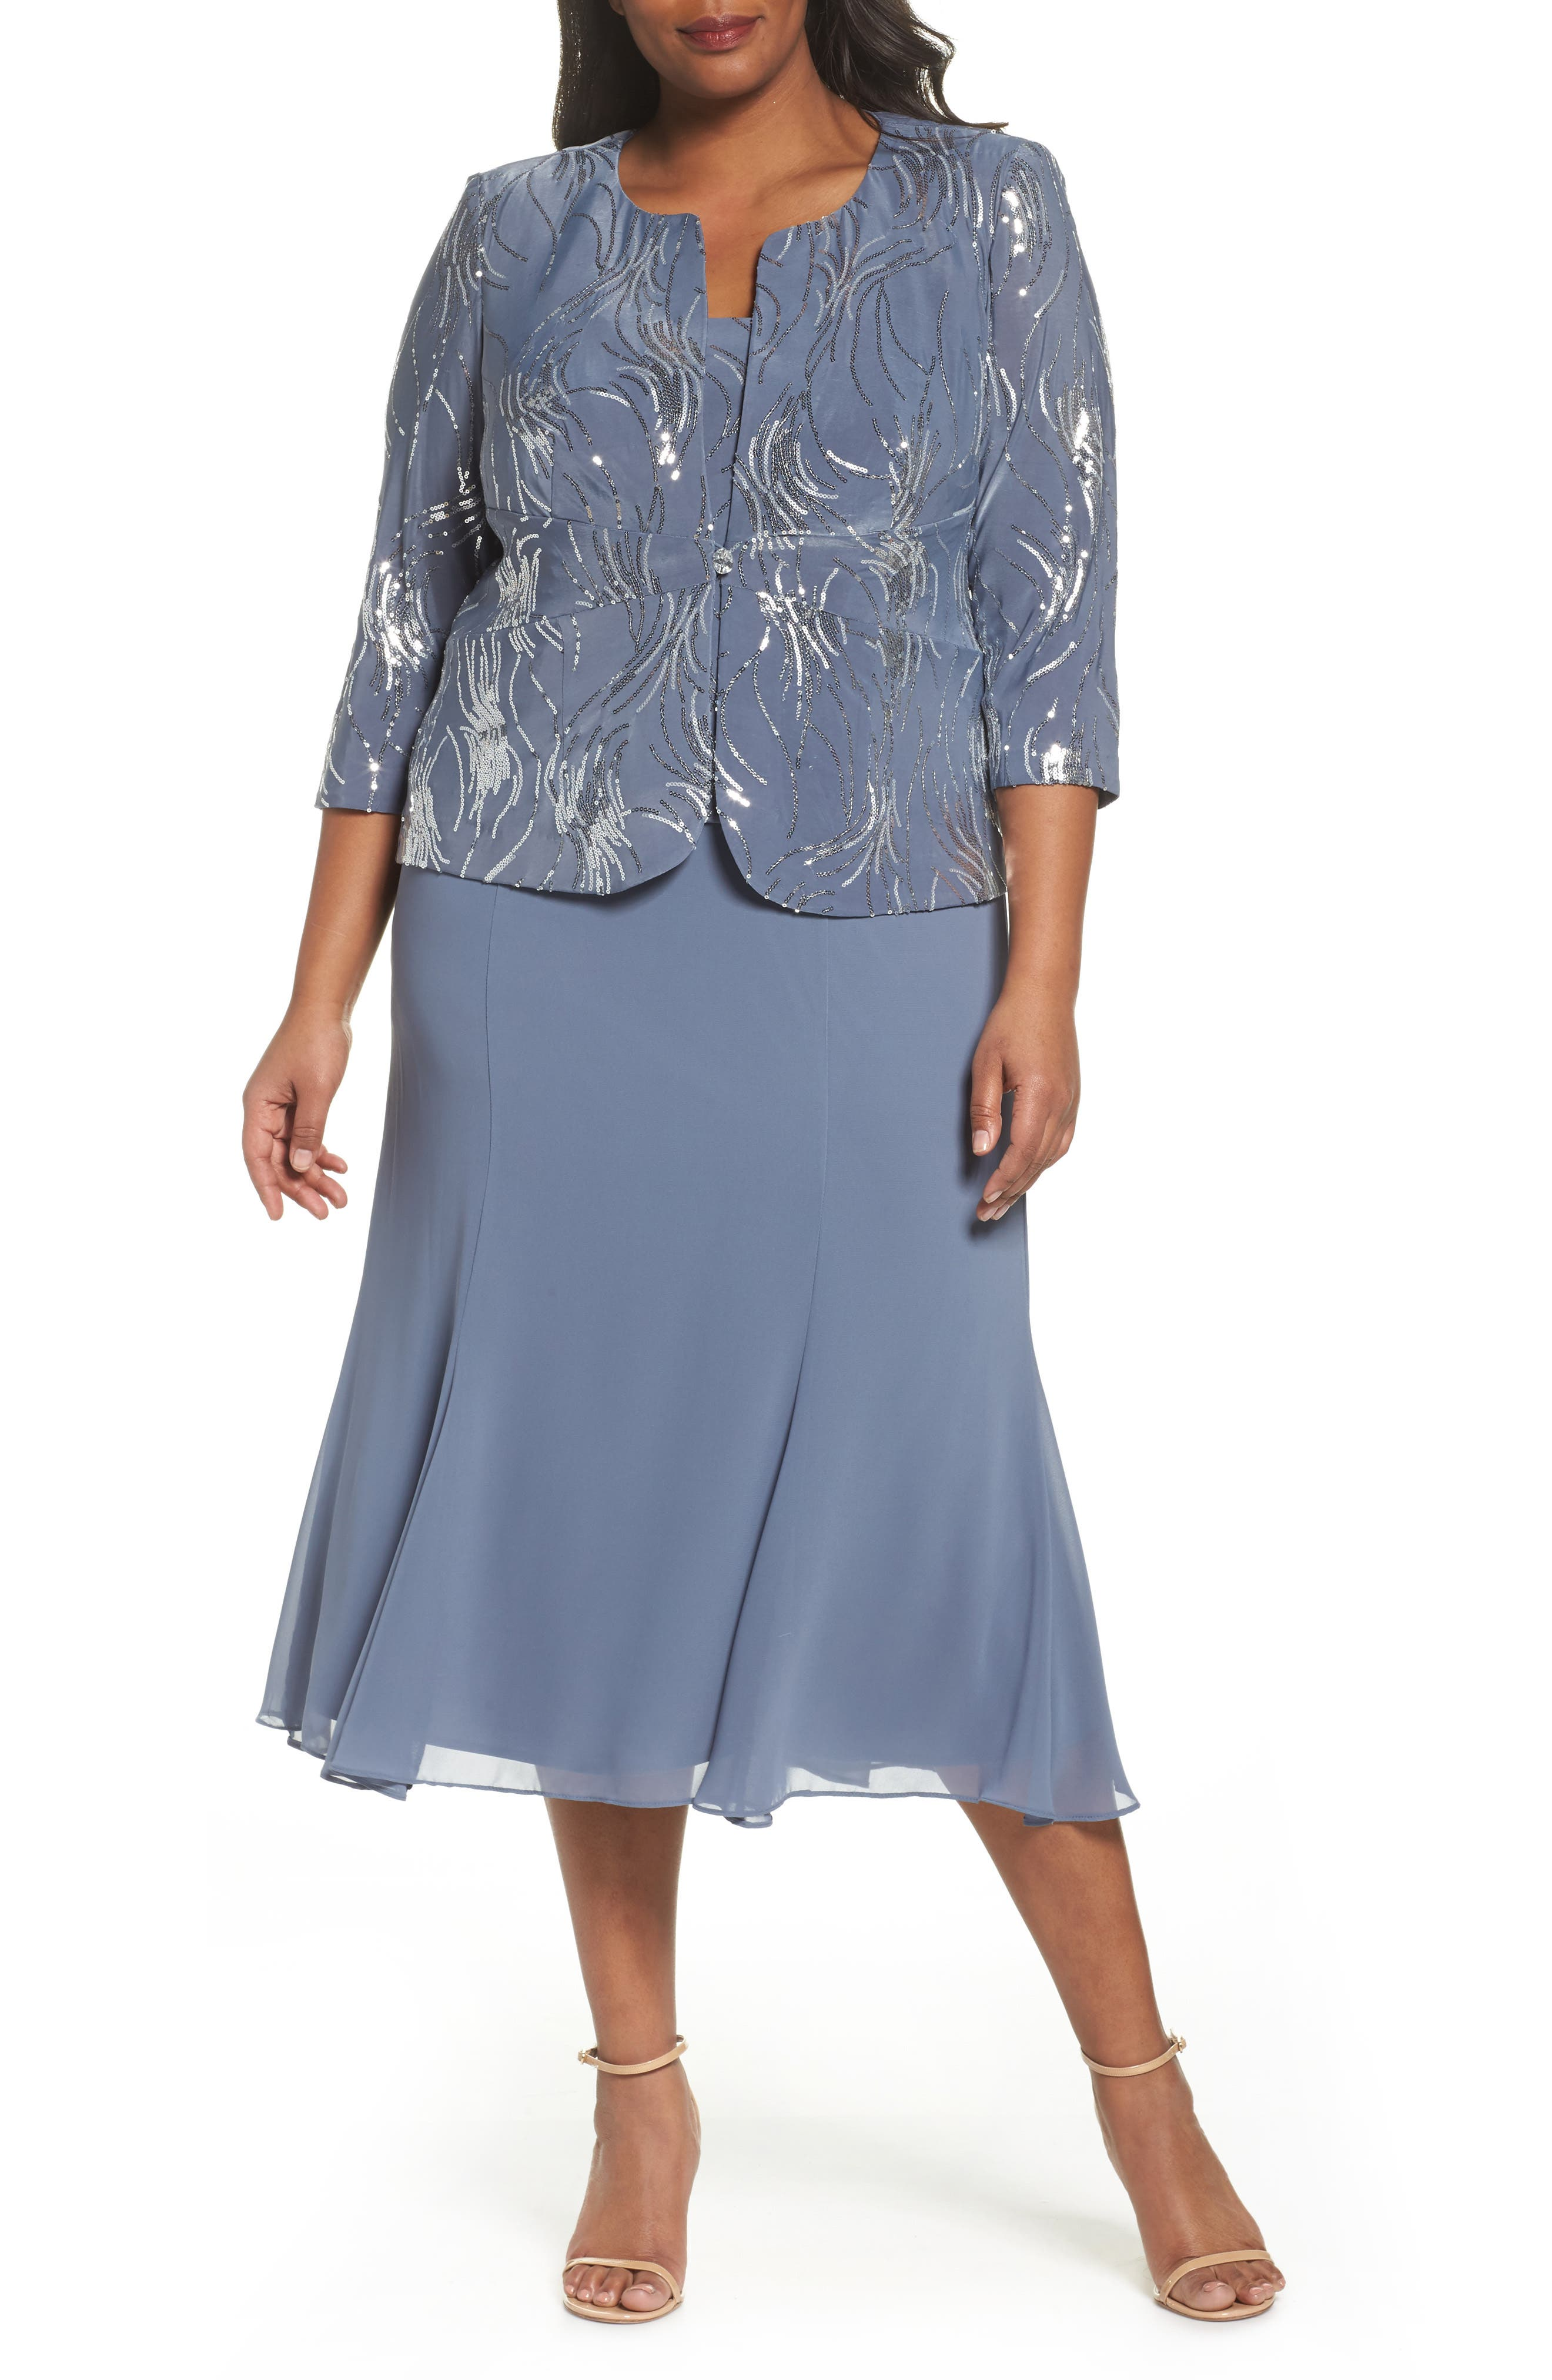 Alternate Image 1 Selected - Alex Evenings Mock Two-Piece Jacket Dress (Plus Size)